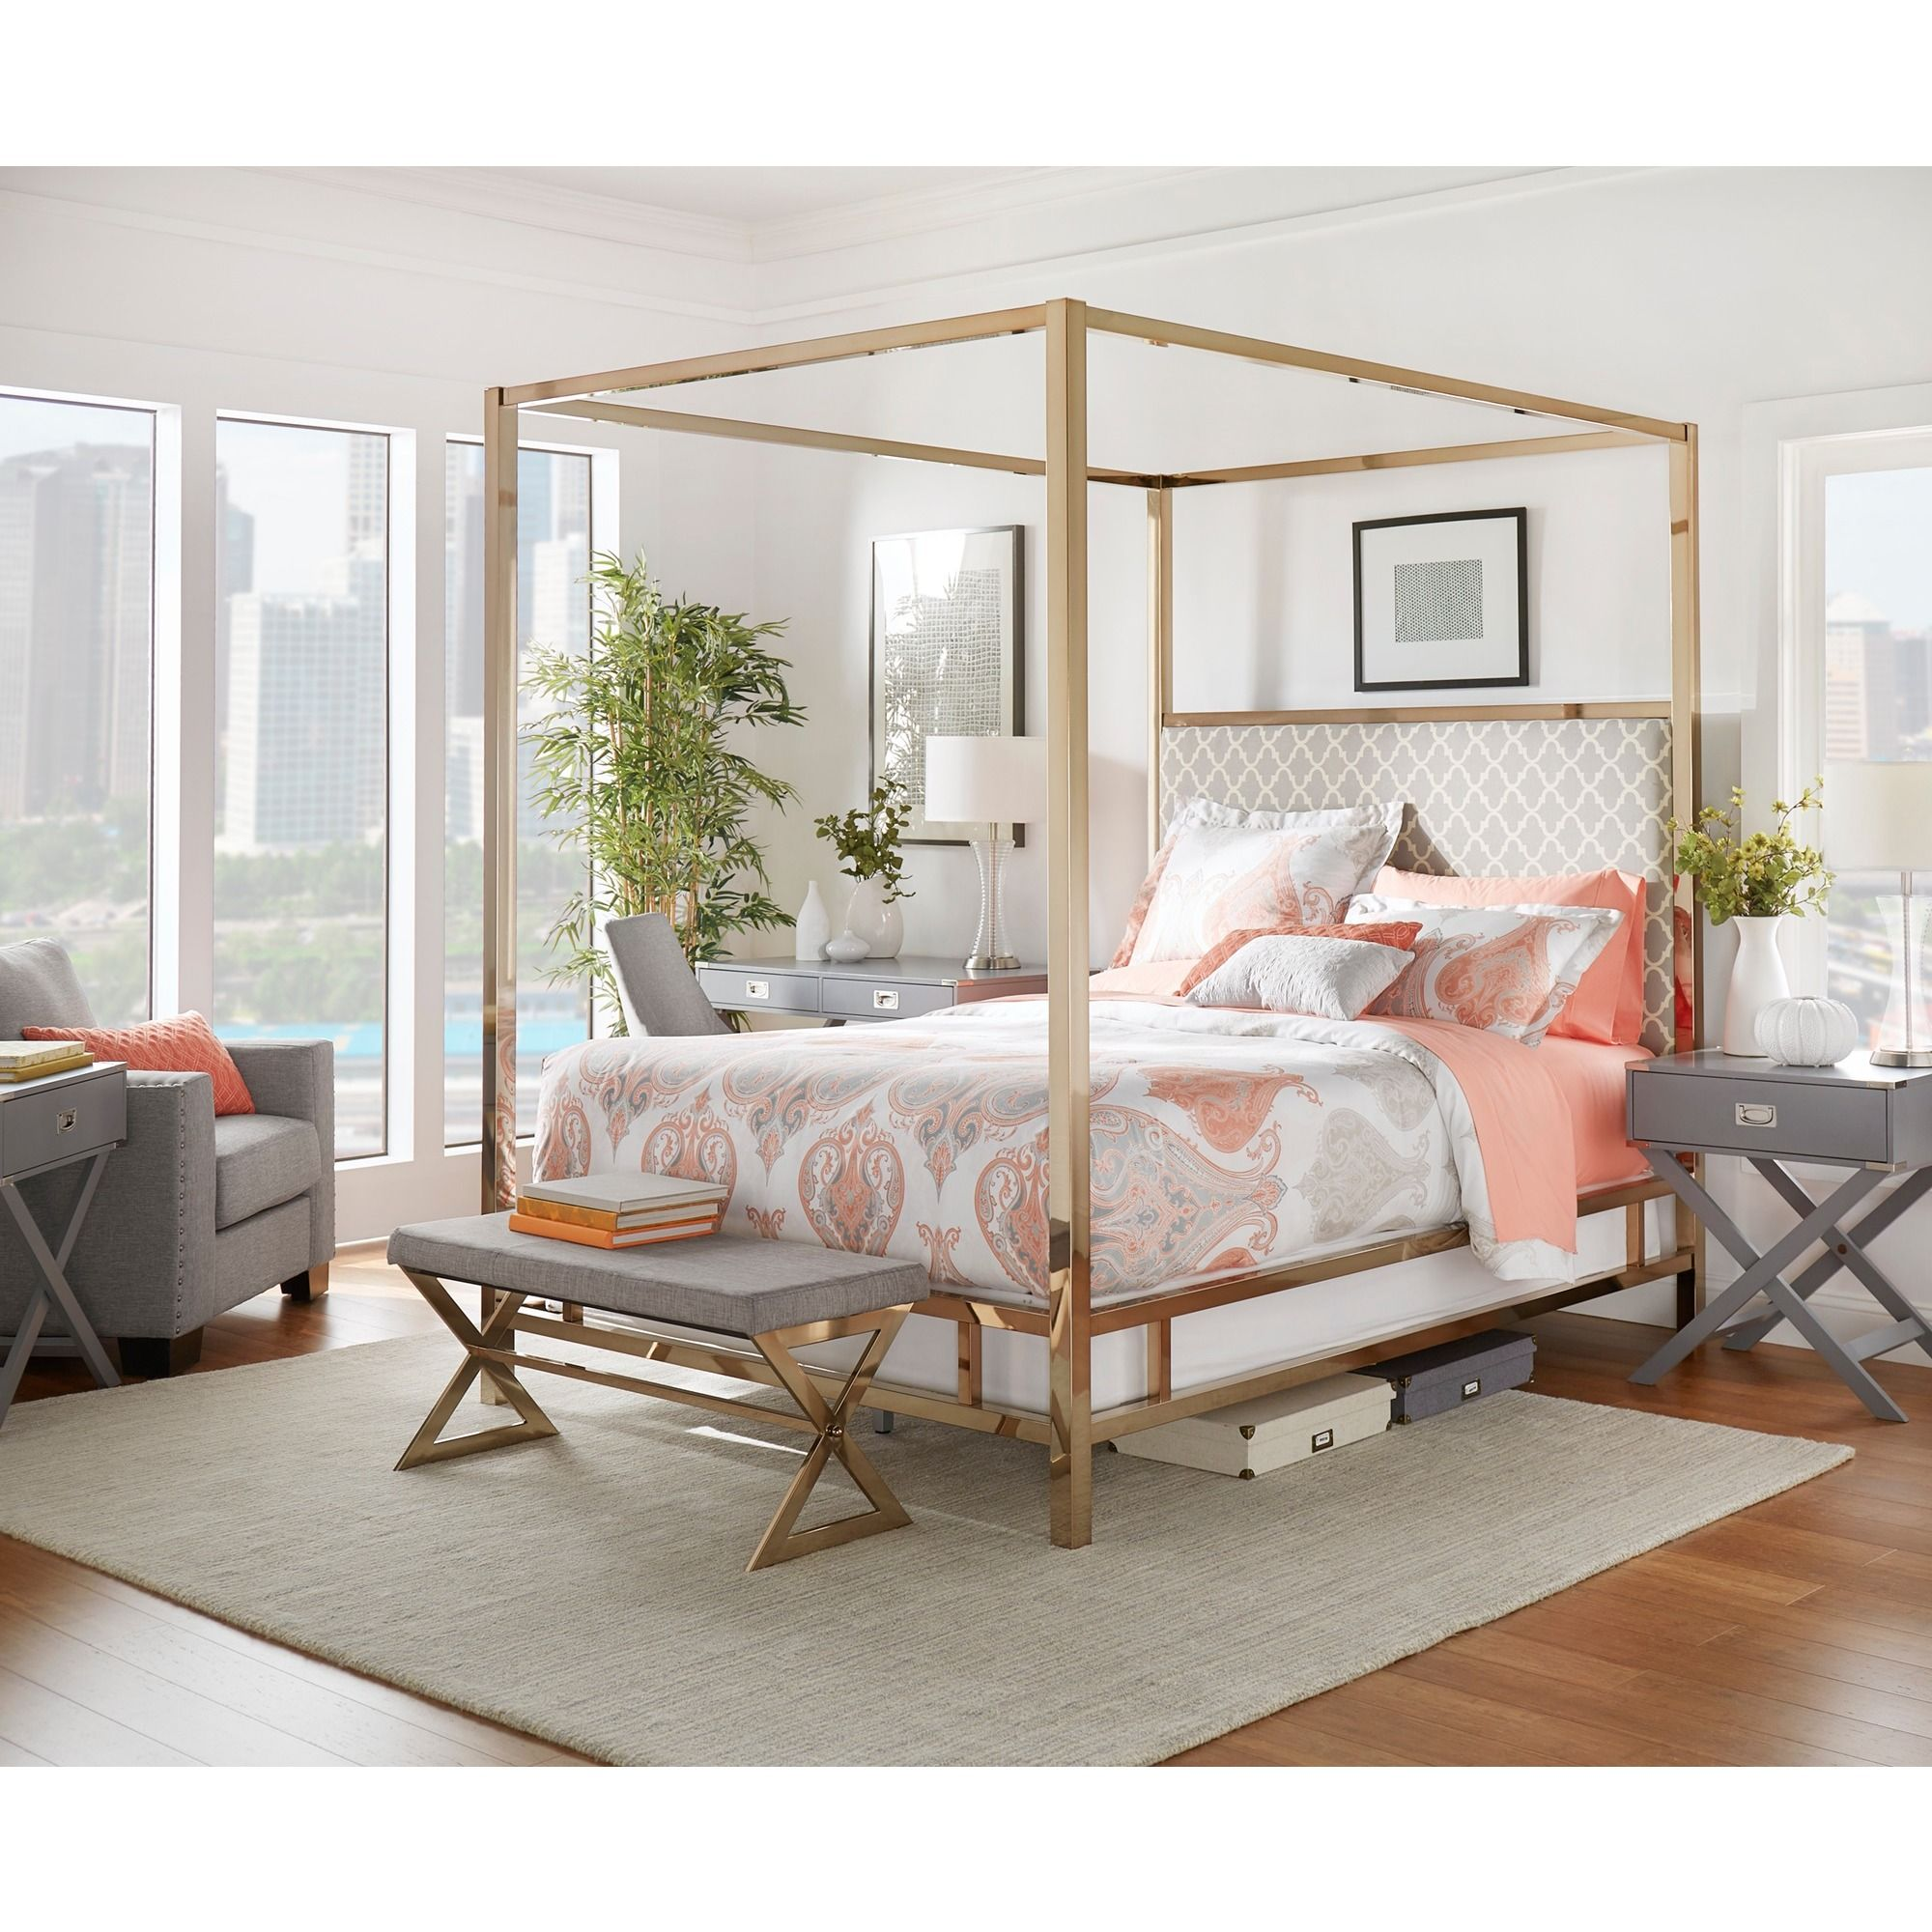 Solivita King-size Canopy Champagne Gold Metal Poster Bed by Inspire Q ( Moroccan Sky Blue Linen)